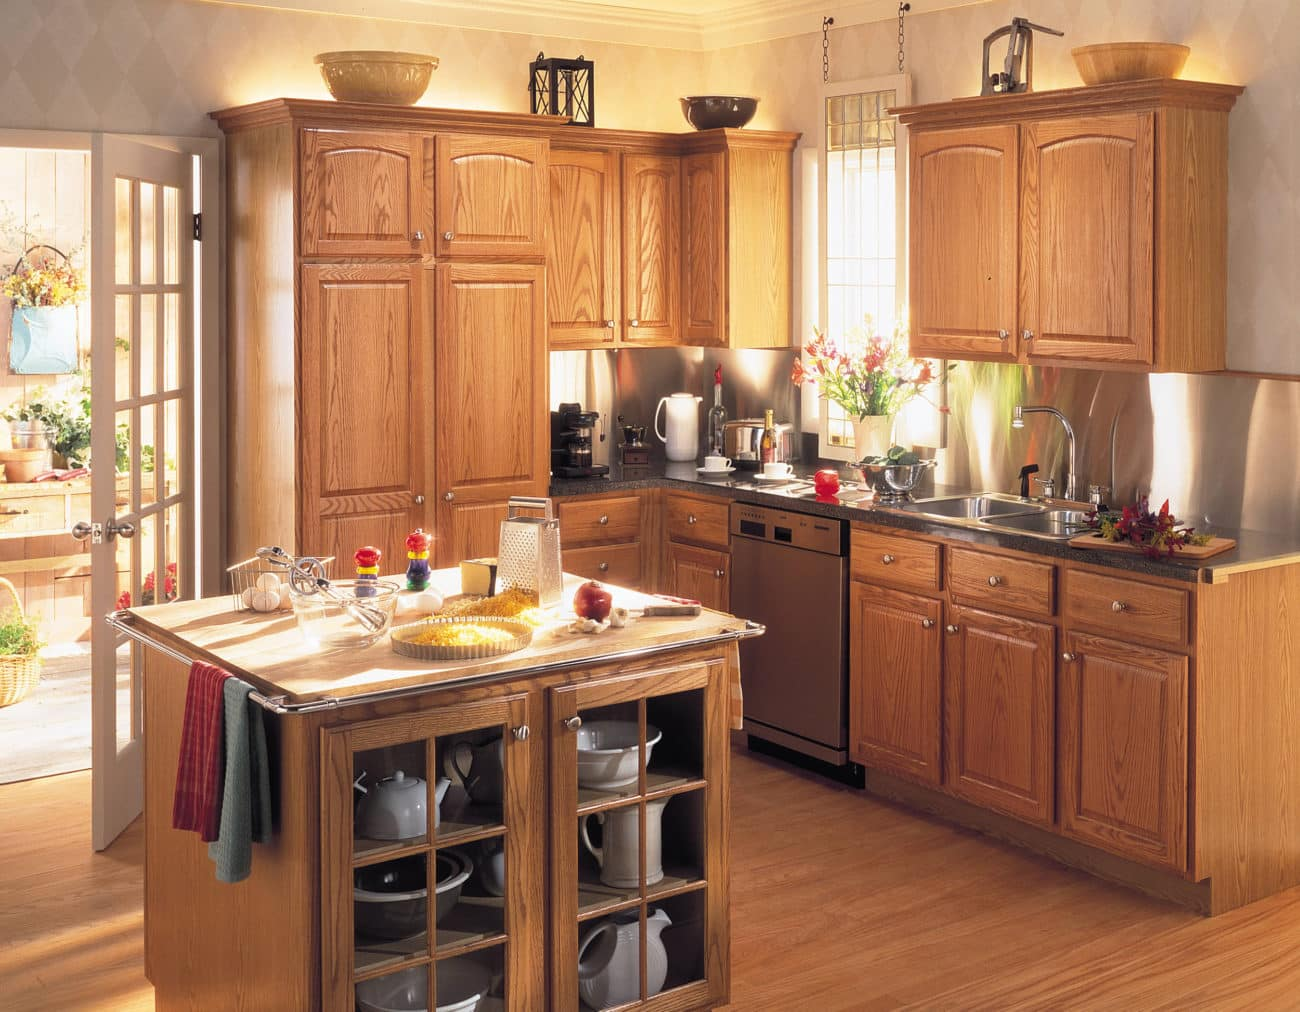 & Aesopu0027s Gables Best Selection of Cabinets in Albuquerque!